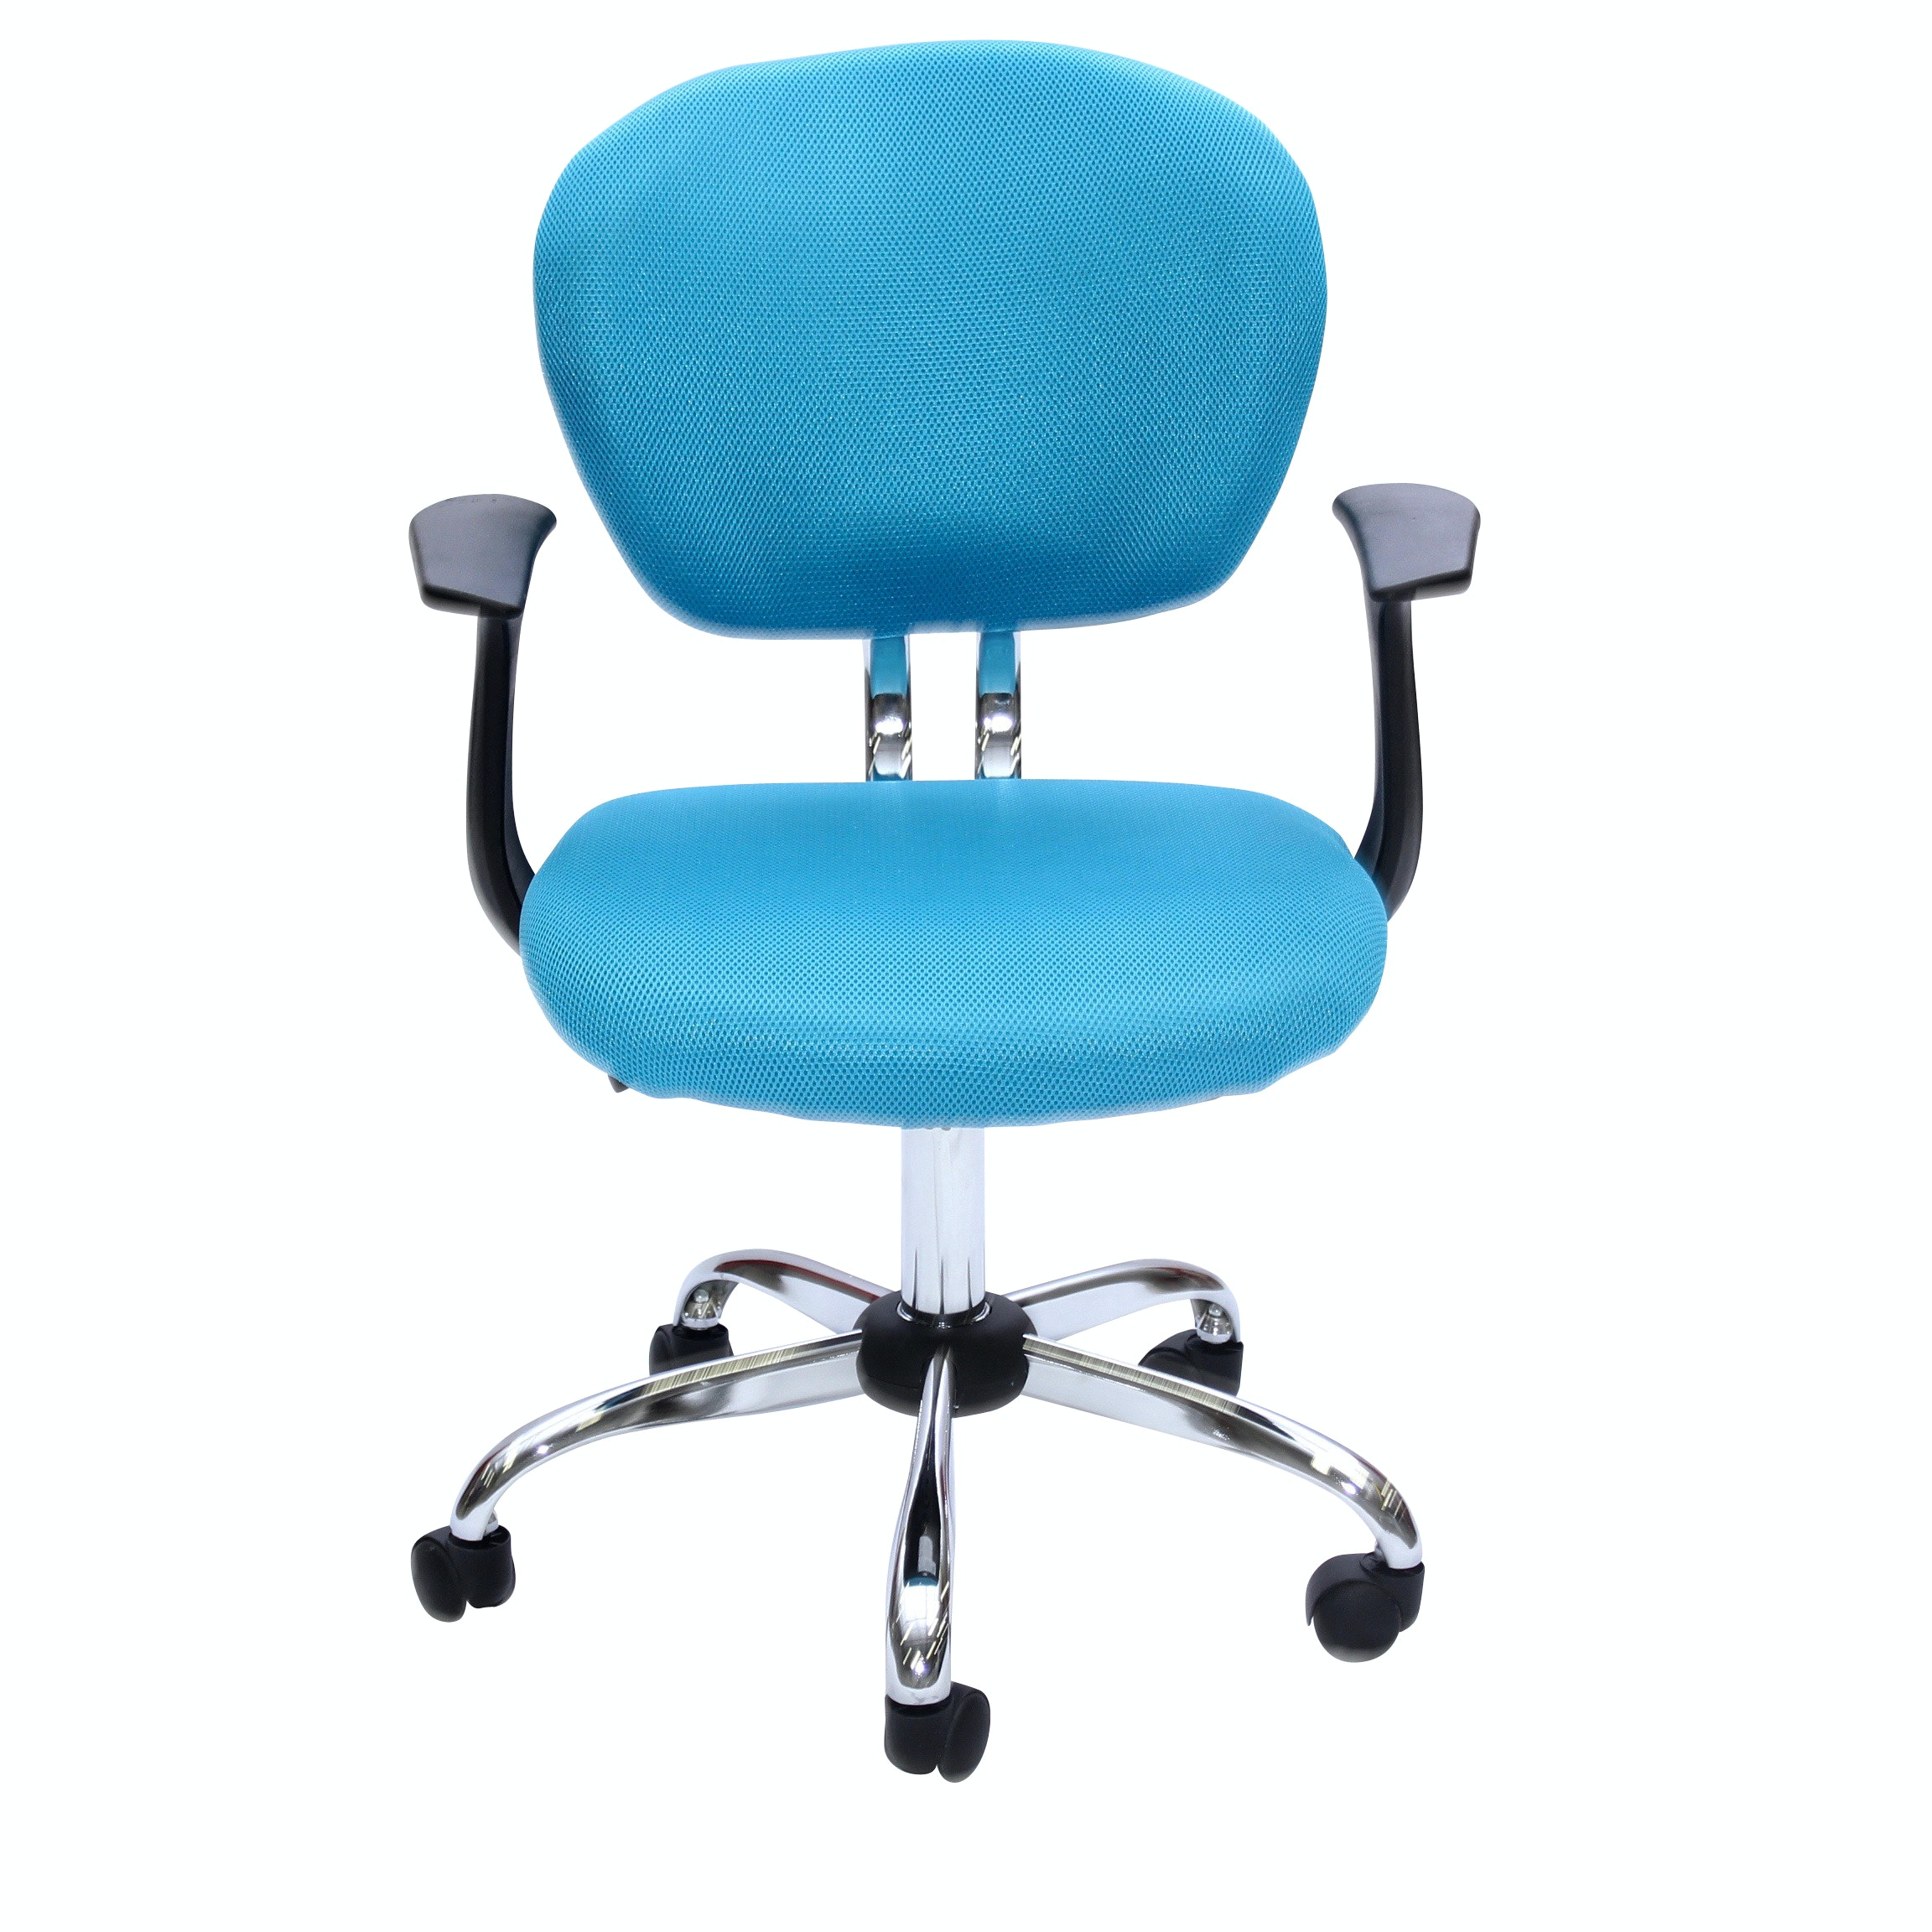 Light Blue Swivel Office Chair, Contemporary